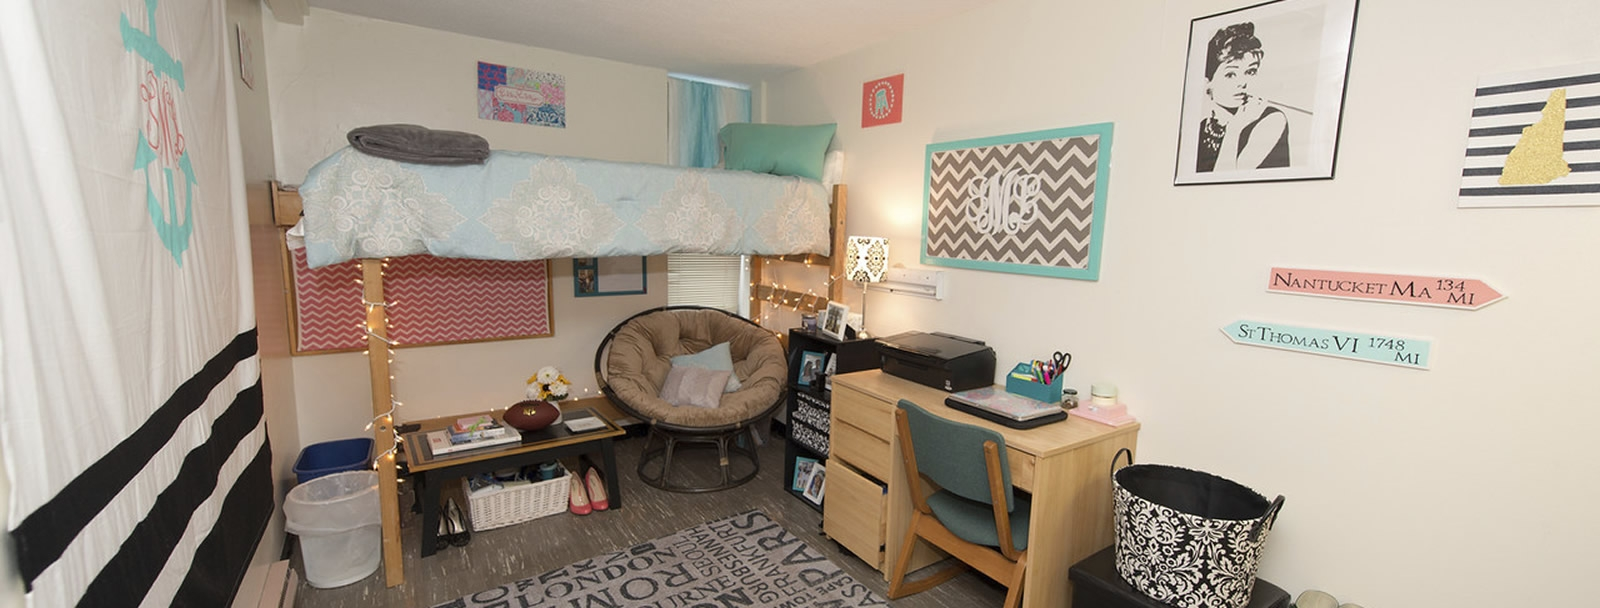 Dorm Room Diy With The Unh Social Team Unh Tales